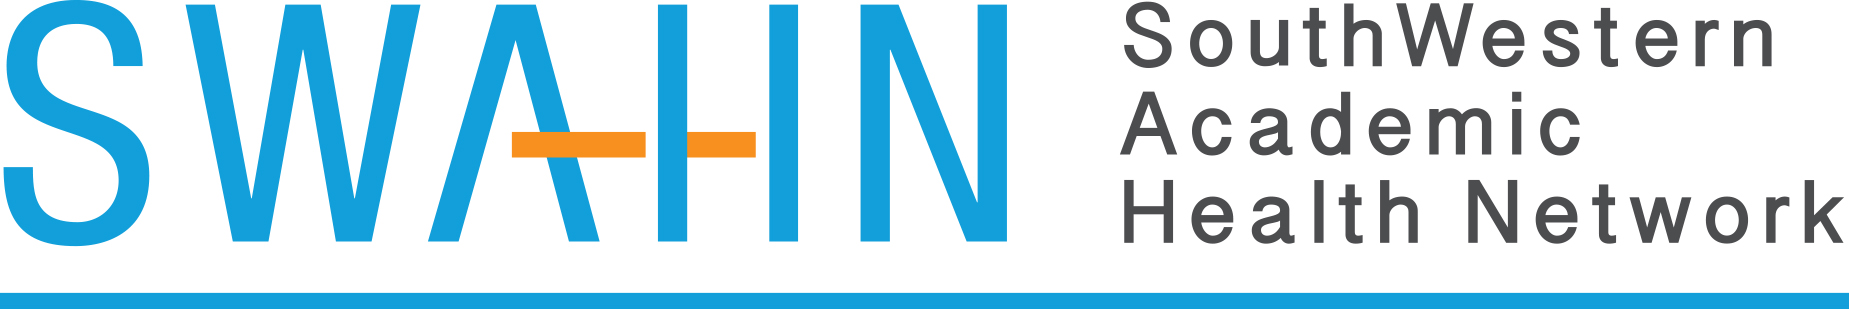 swahn_logo_3_colour_1.jpg